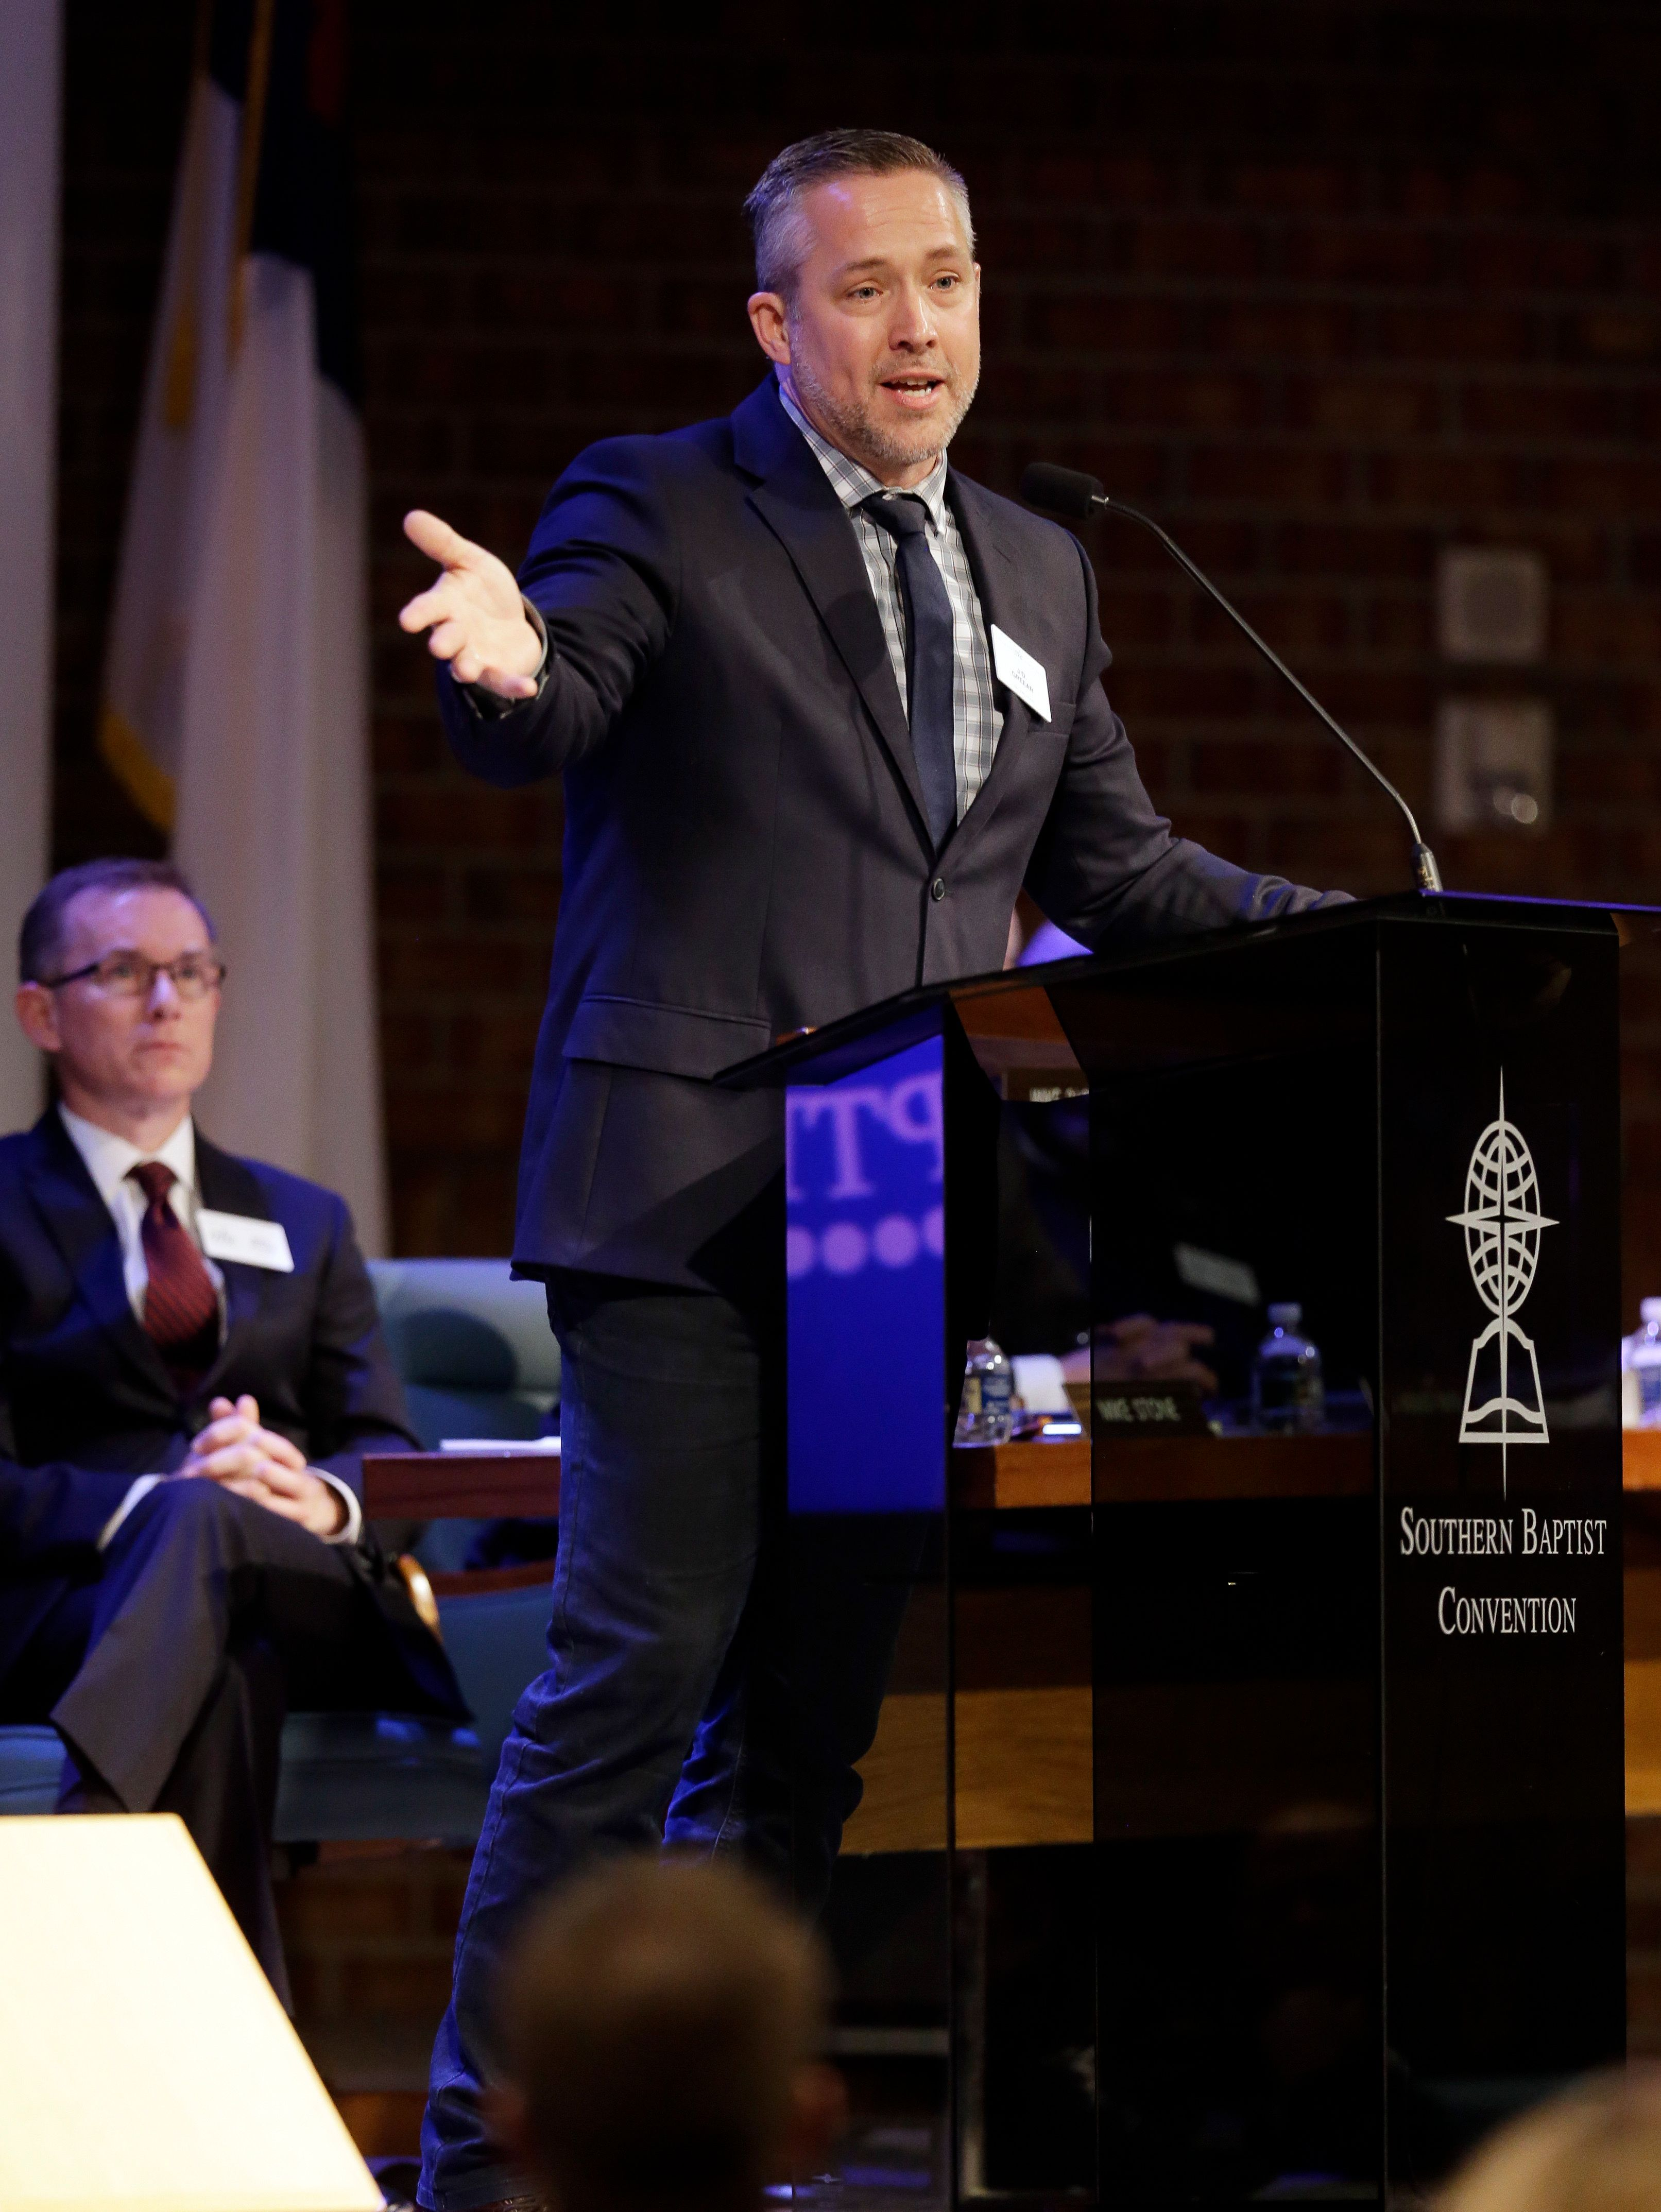 Southern Baptist Convention President J.D. Greear speaks to the denomination's executive committee Monday, Feb. 18, 2019, in